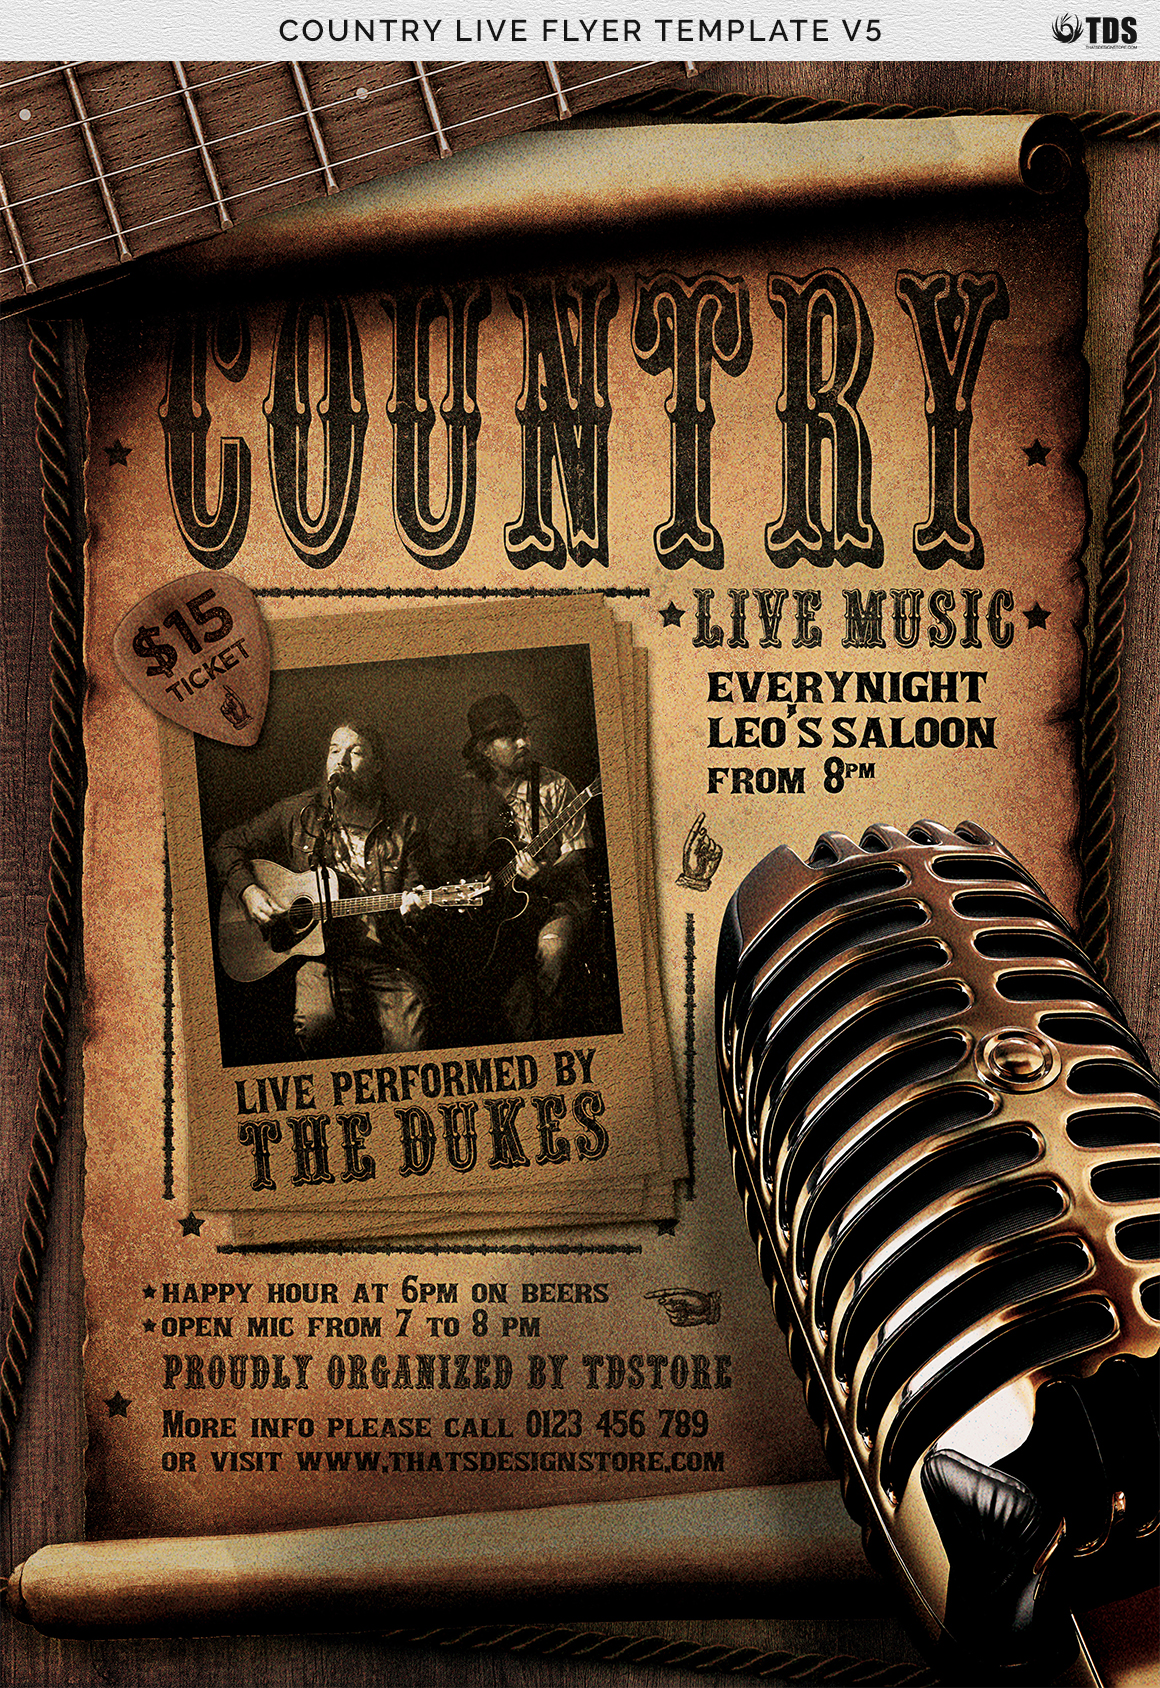 Country Live Flyer Template V5 example image 7